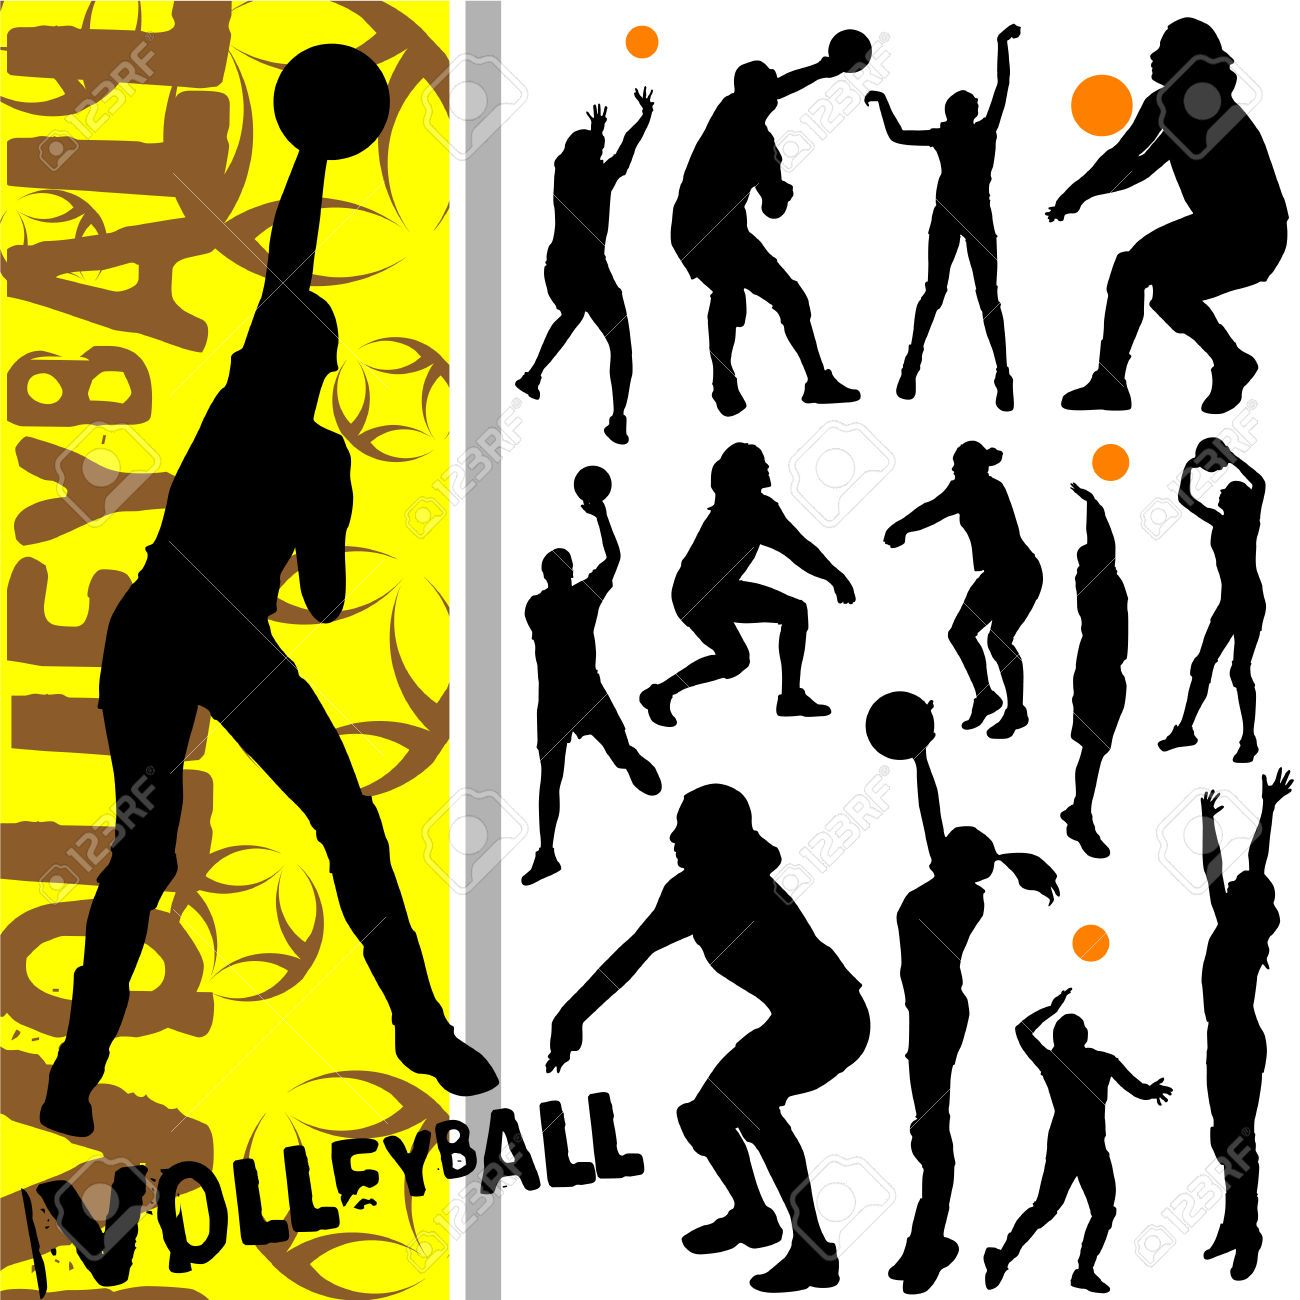 Image Result For Girls Volleyball Shadow Pic Volleyball Silhouette Silhouette Vector Volleyball